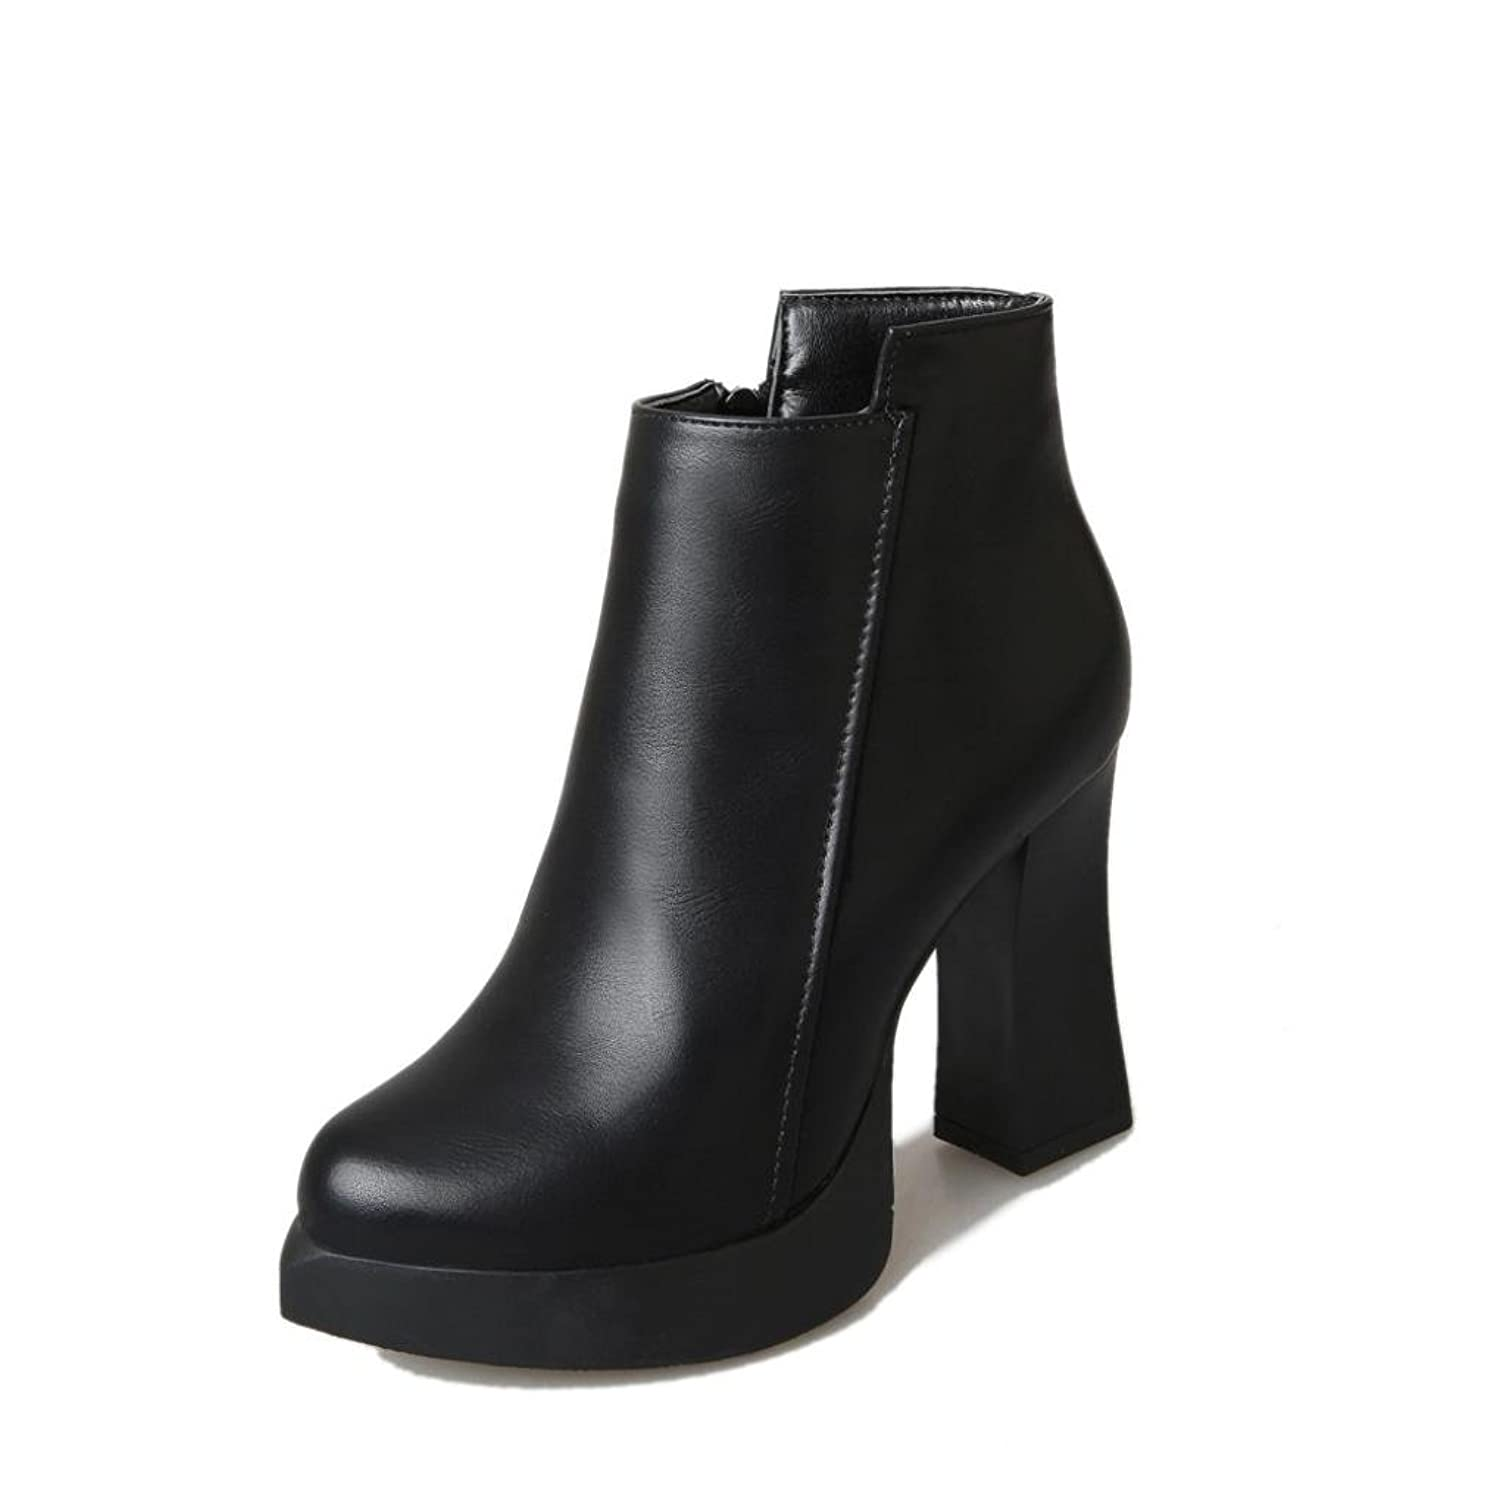 ☆ ▷ ♤ PrettyWinter High Heel Short Martin Boots